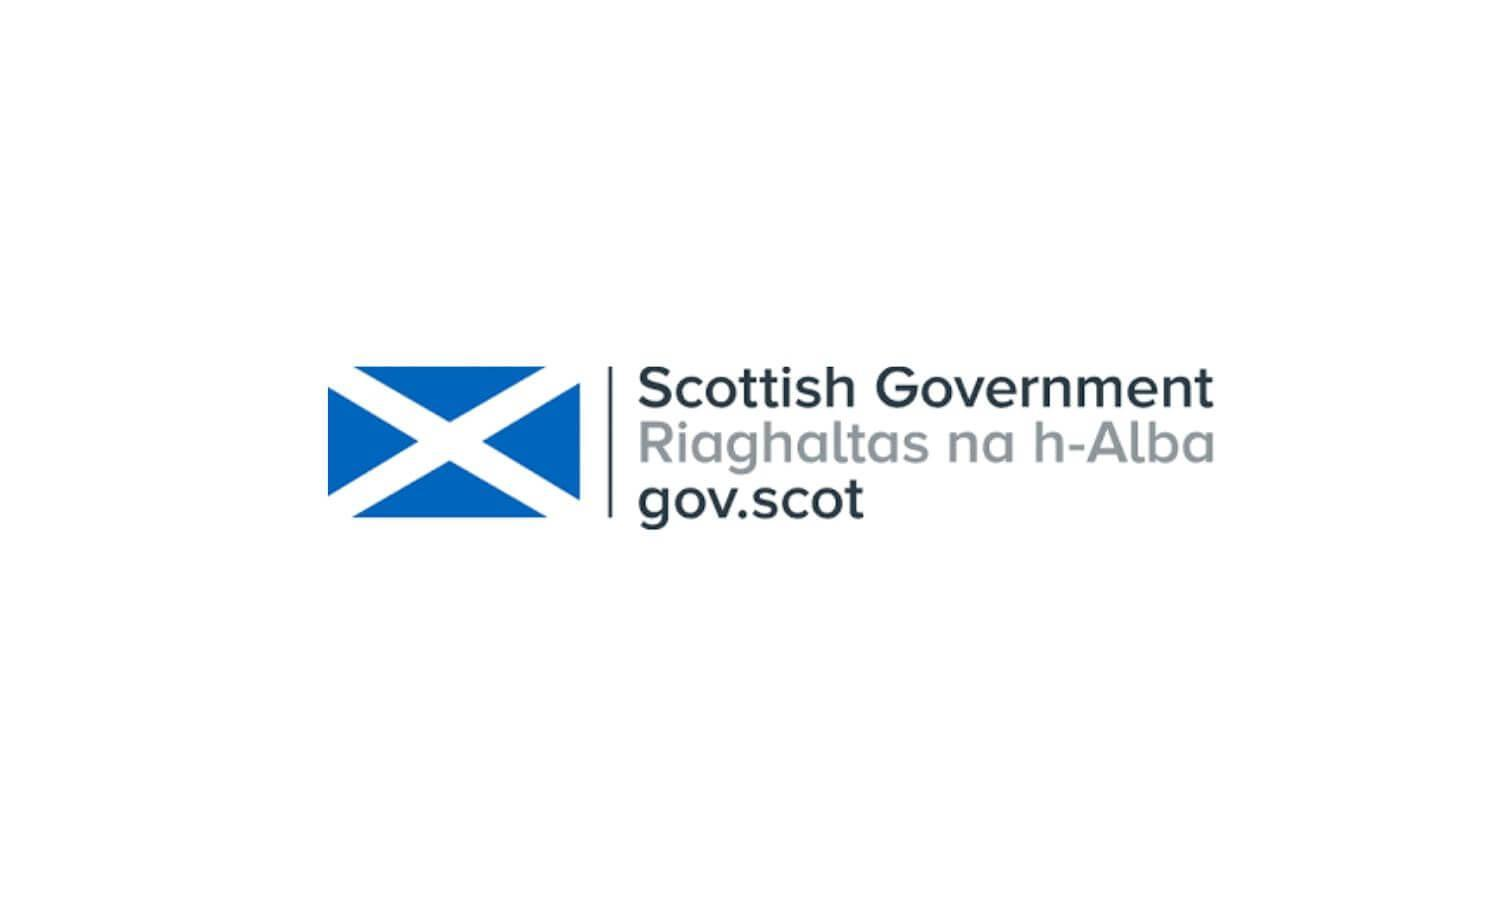 Scottish Government logo with Saltire Flag